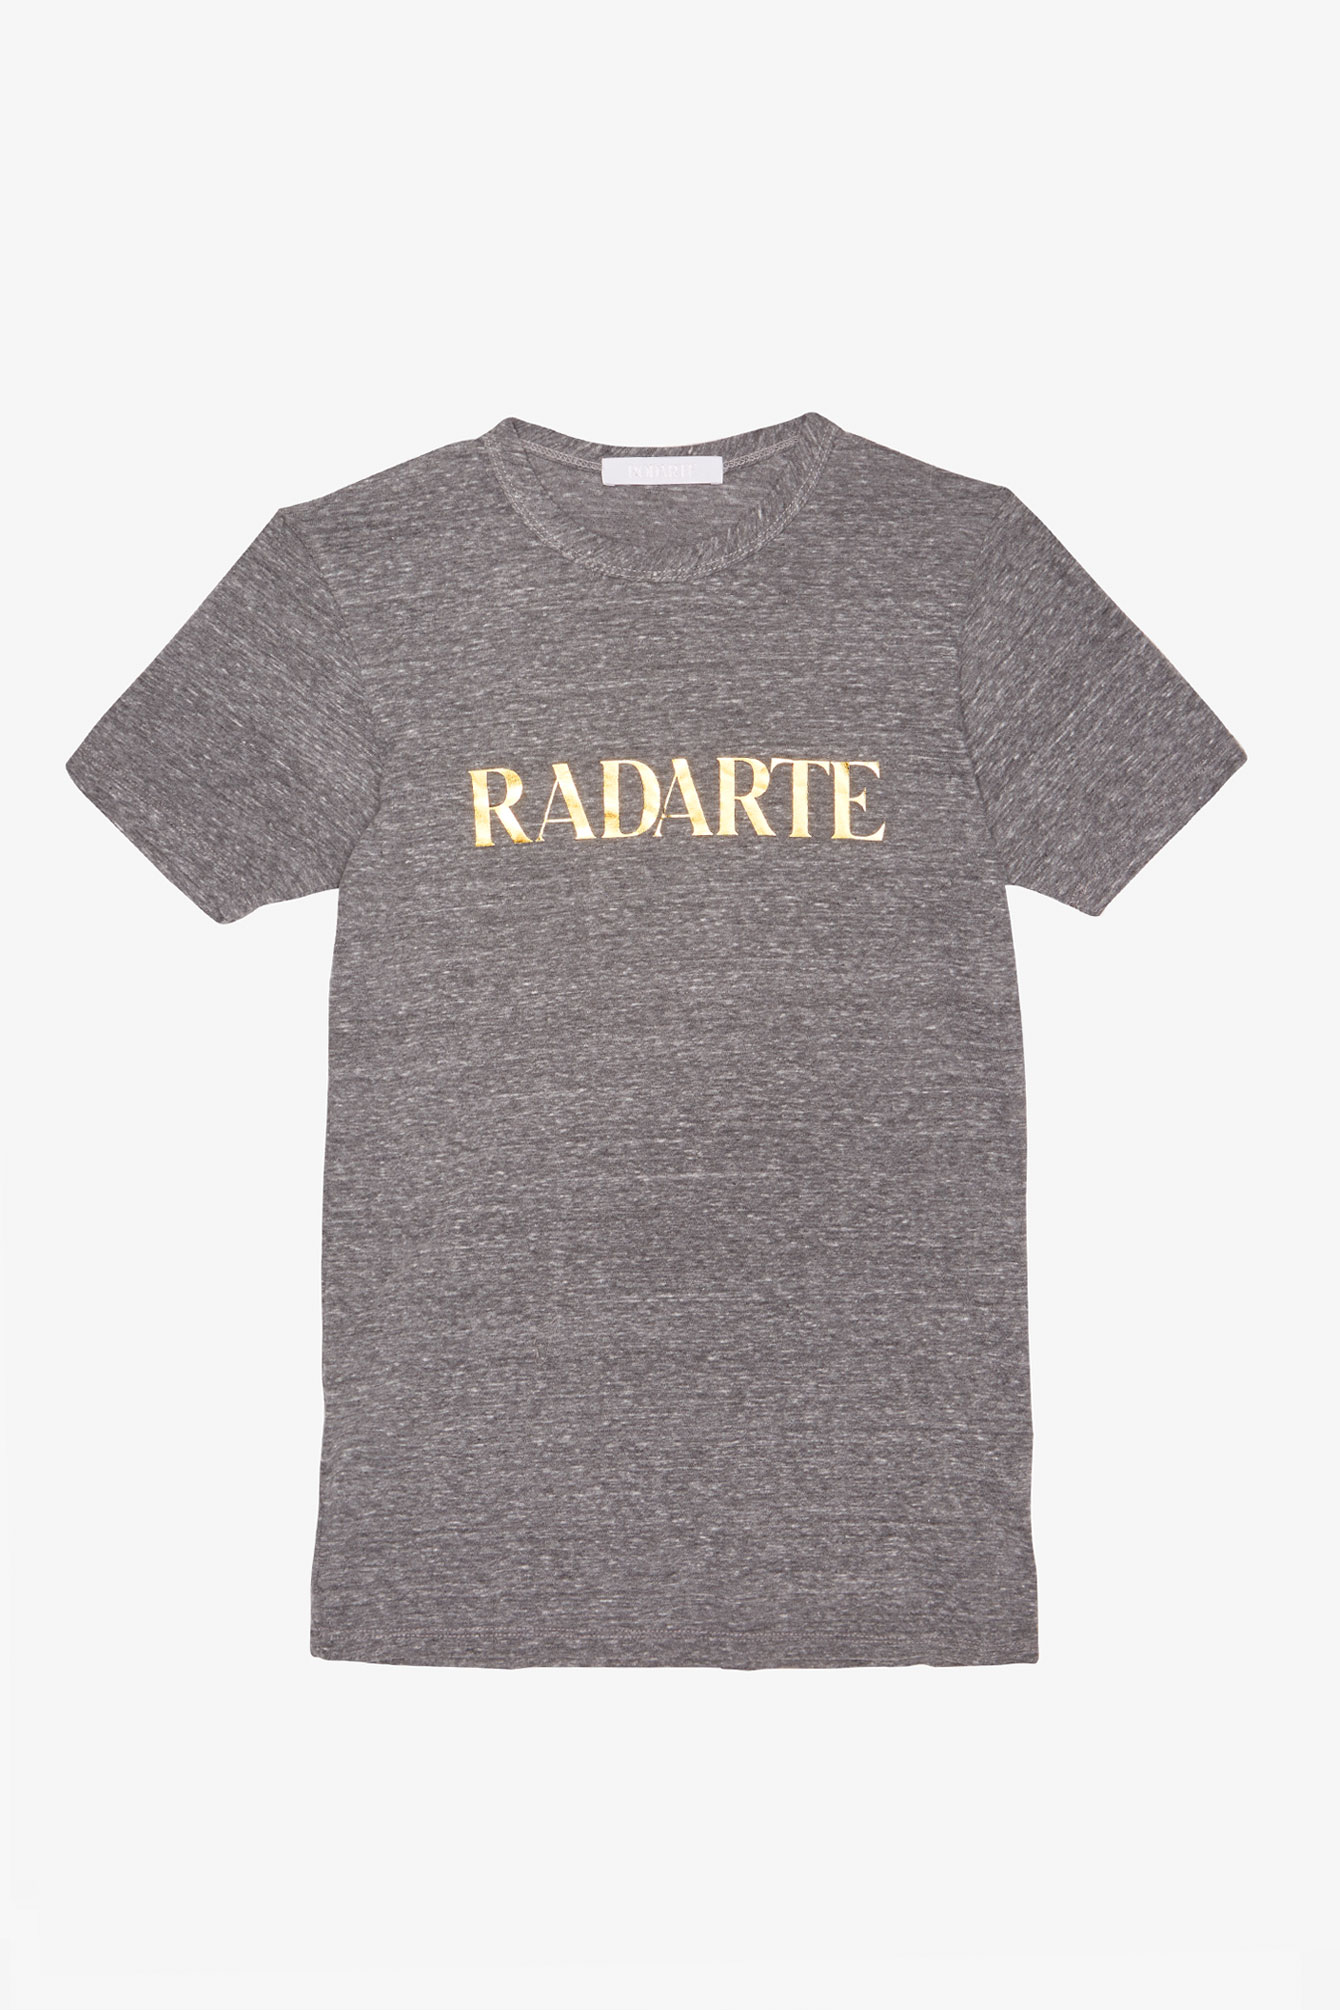 Grey Radarte Foil T Shirt Gold